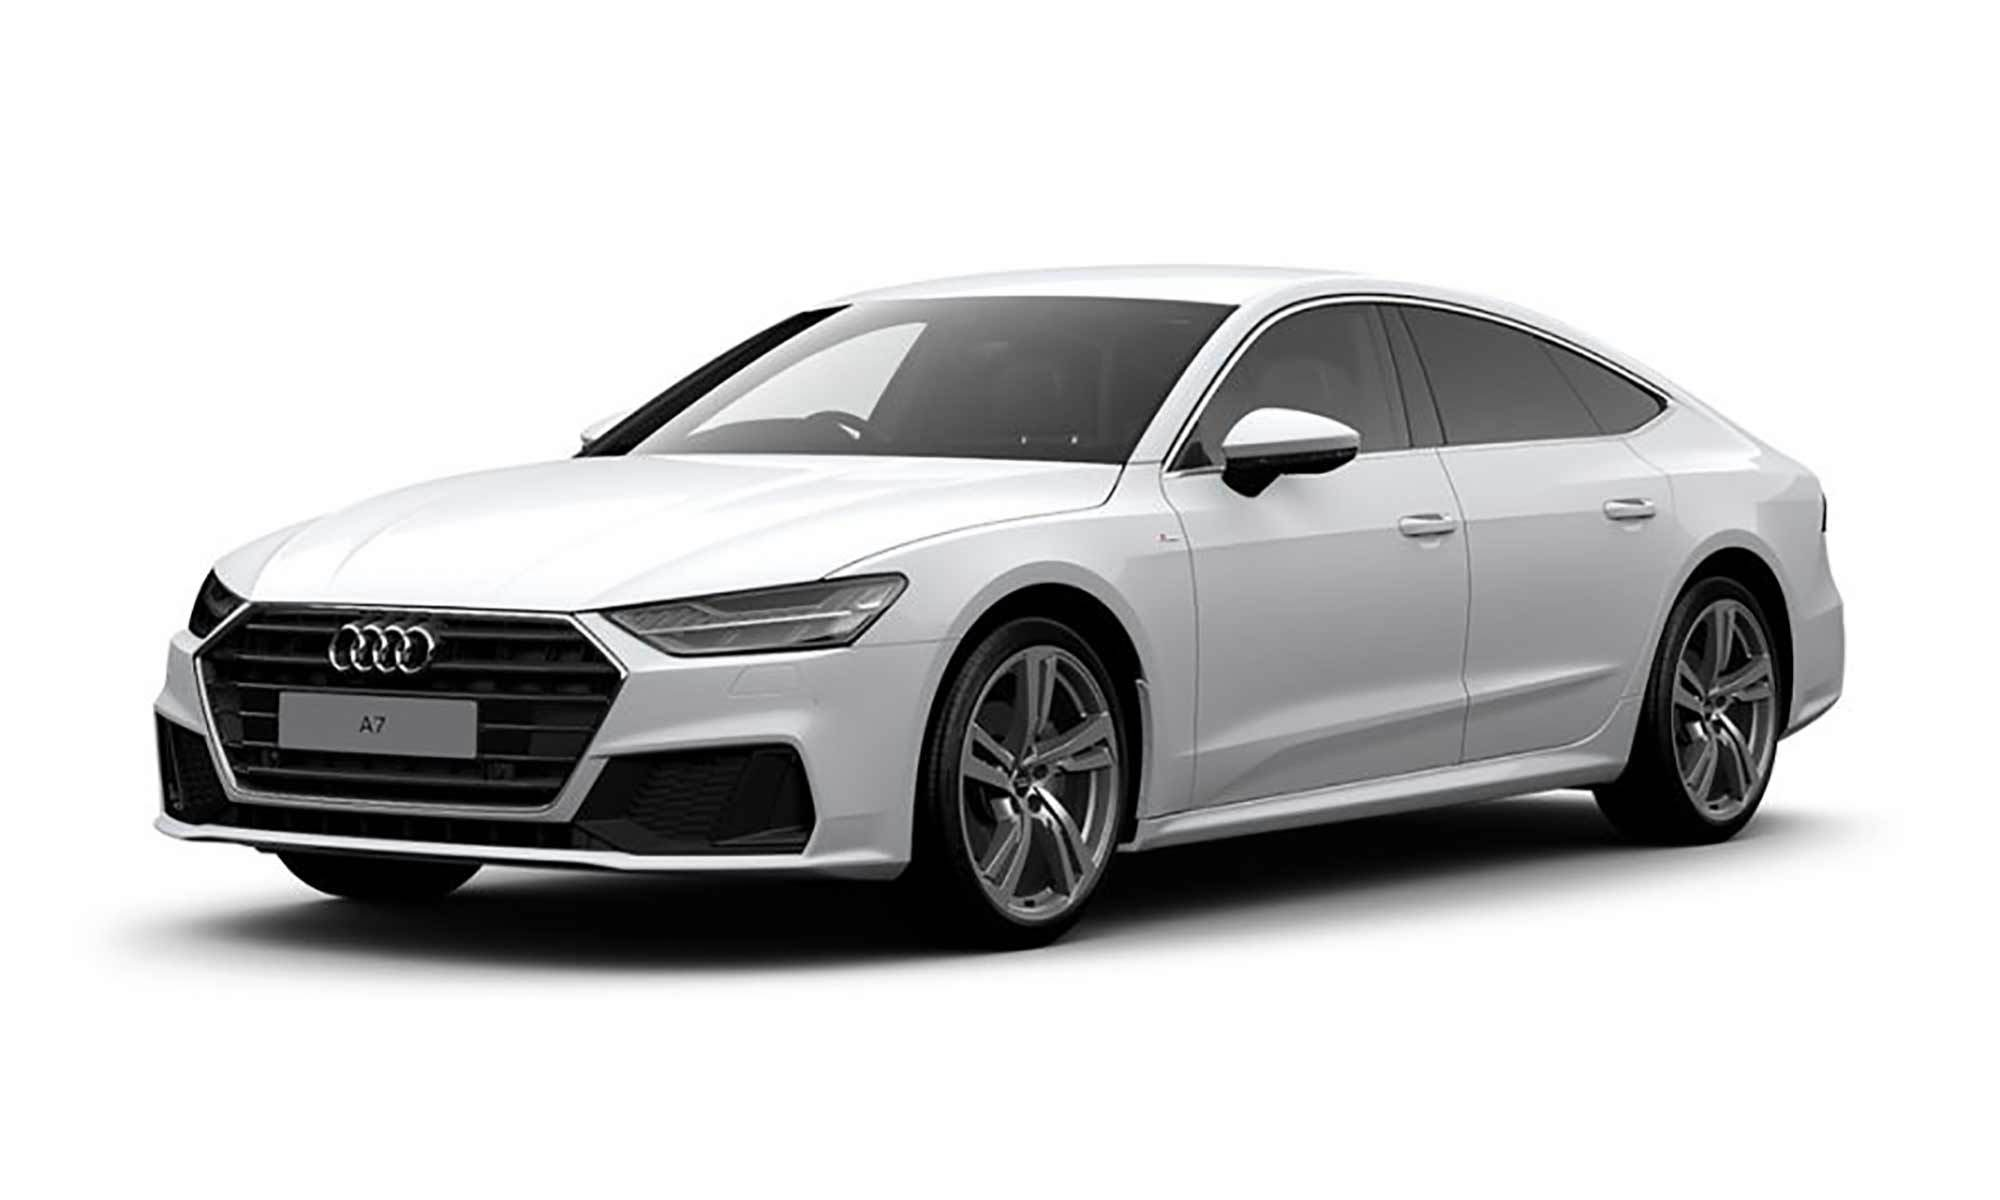 Audi A7 Tfsie White Background 1